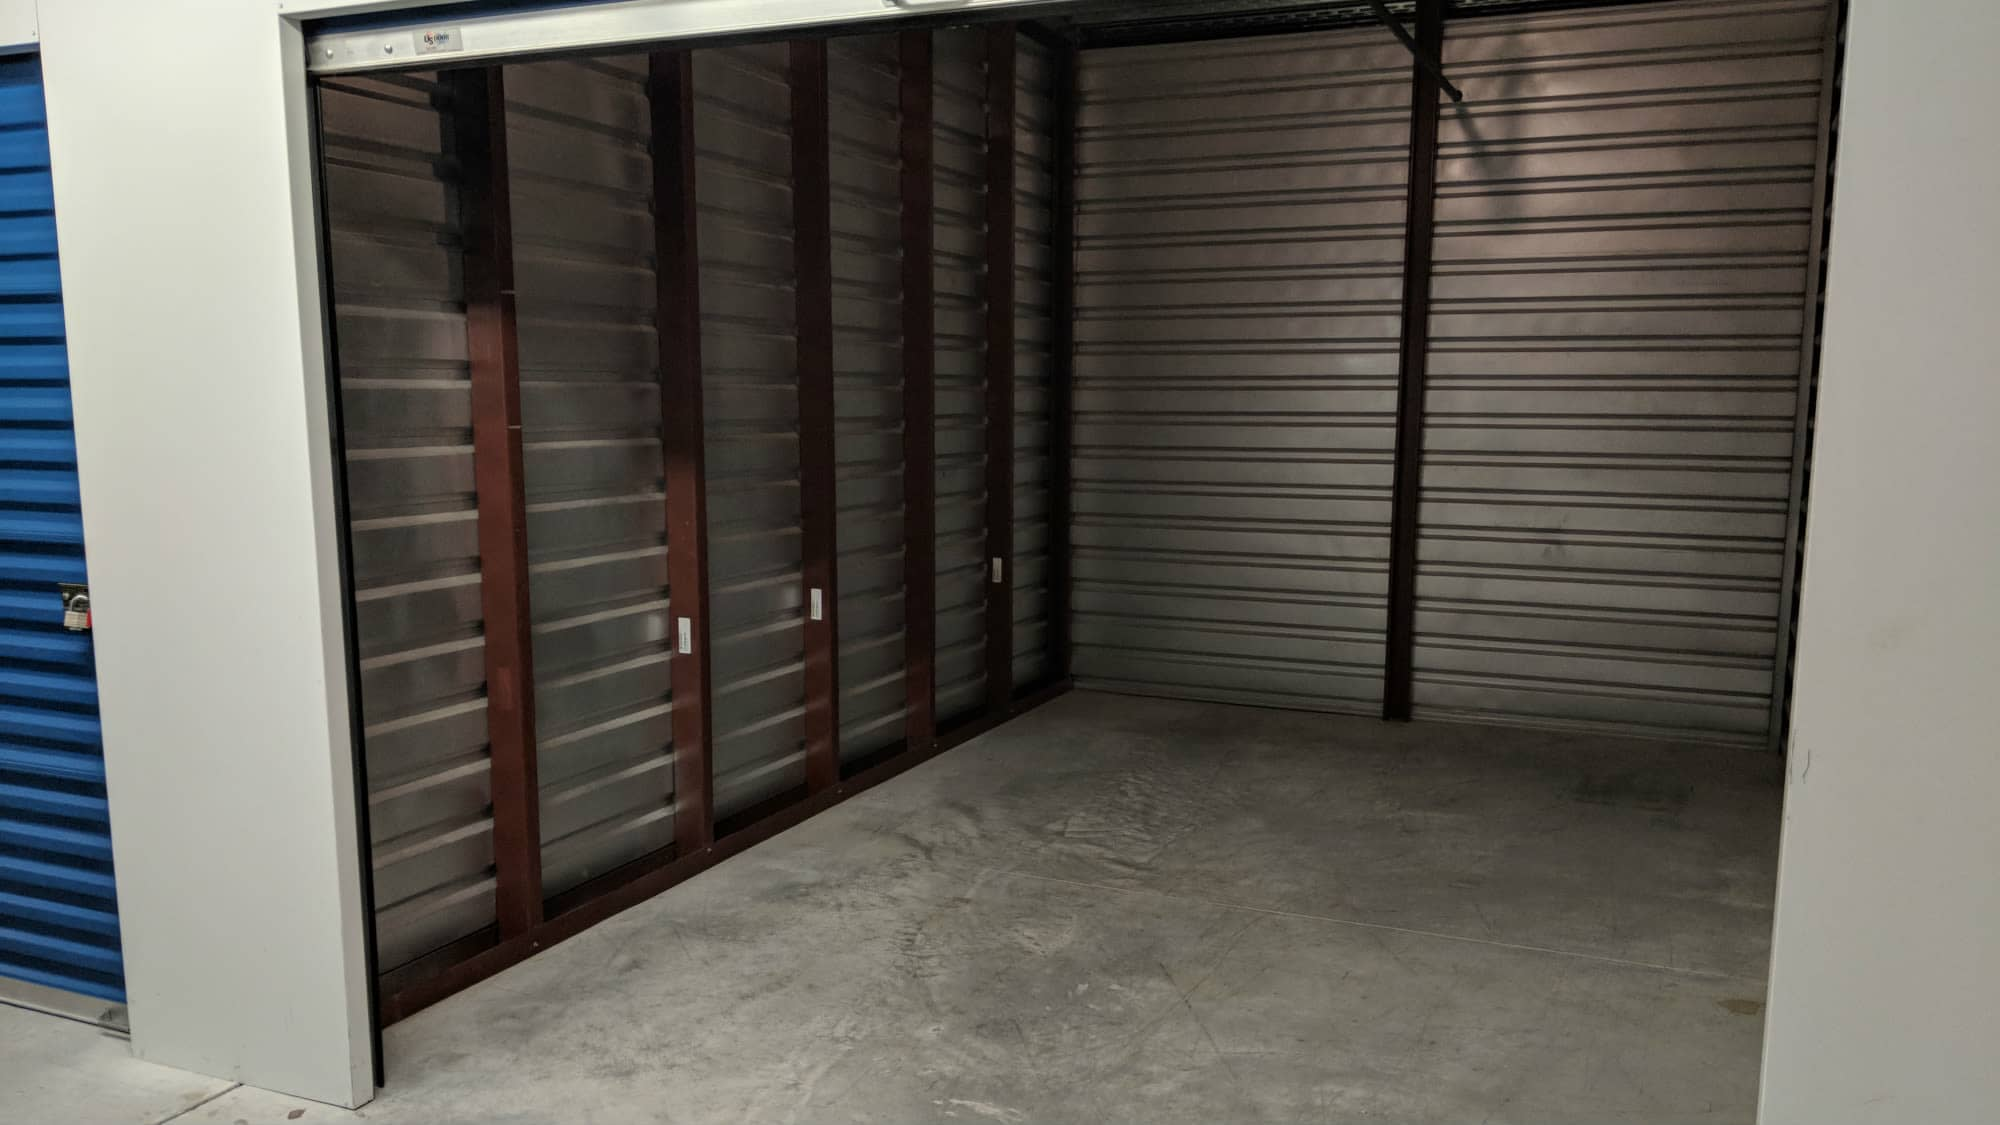 Empty unit at Self Storage Plus in Sterling, VA